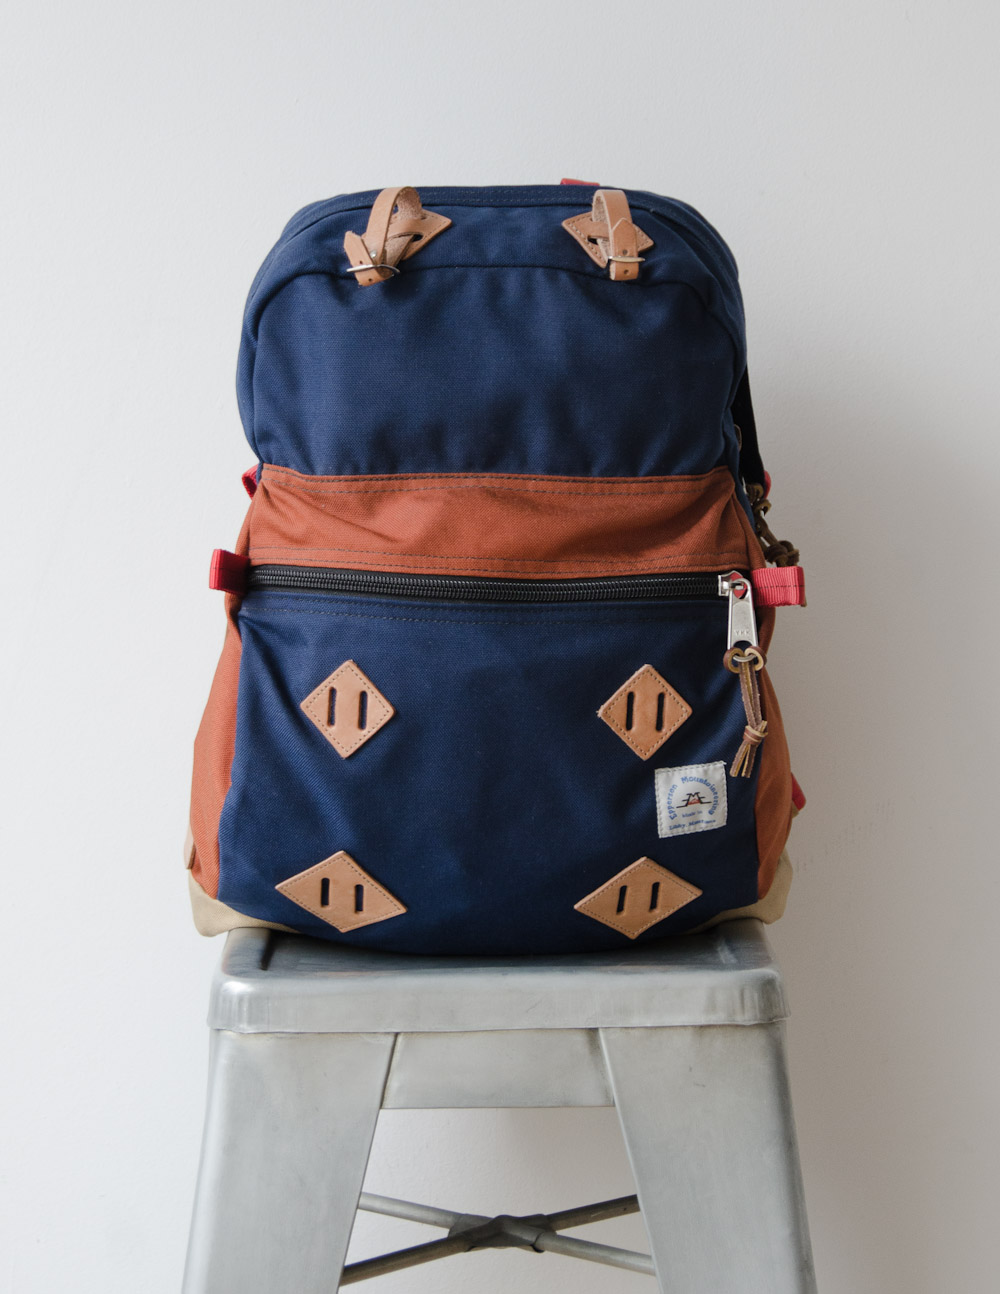 premium-picks-backpacks-5.jpg